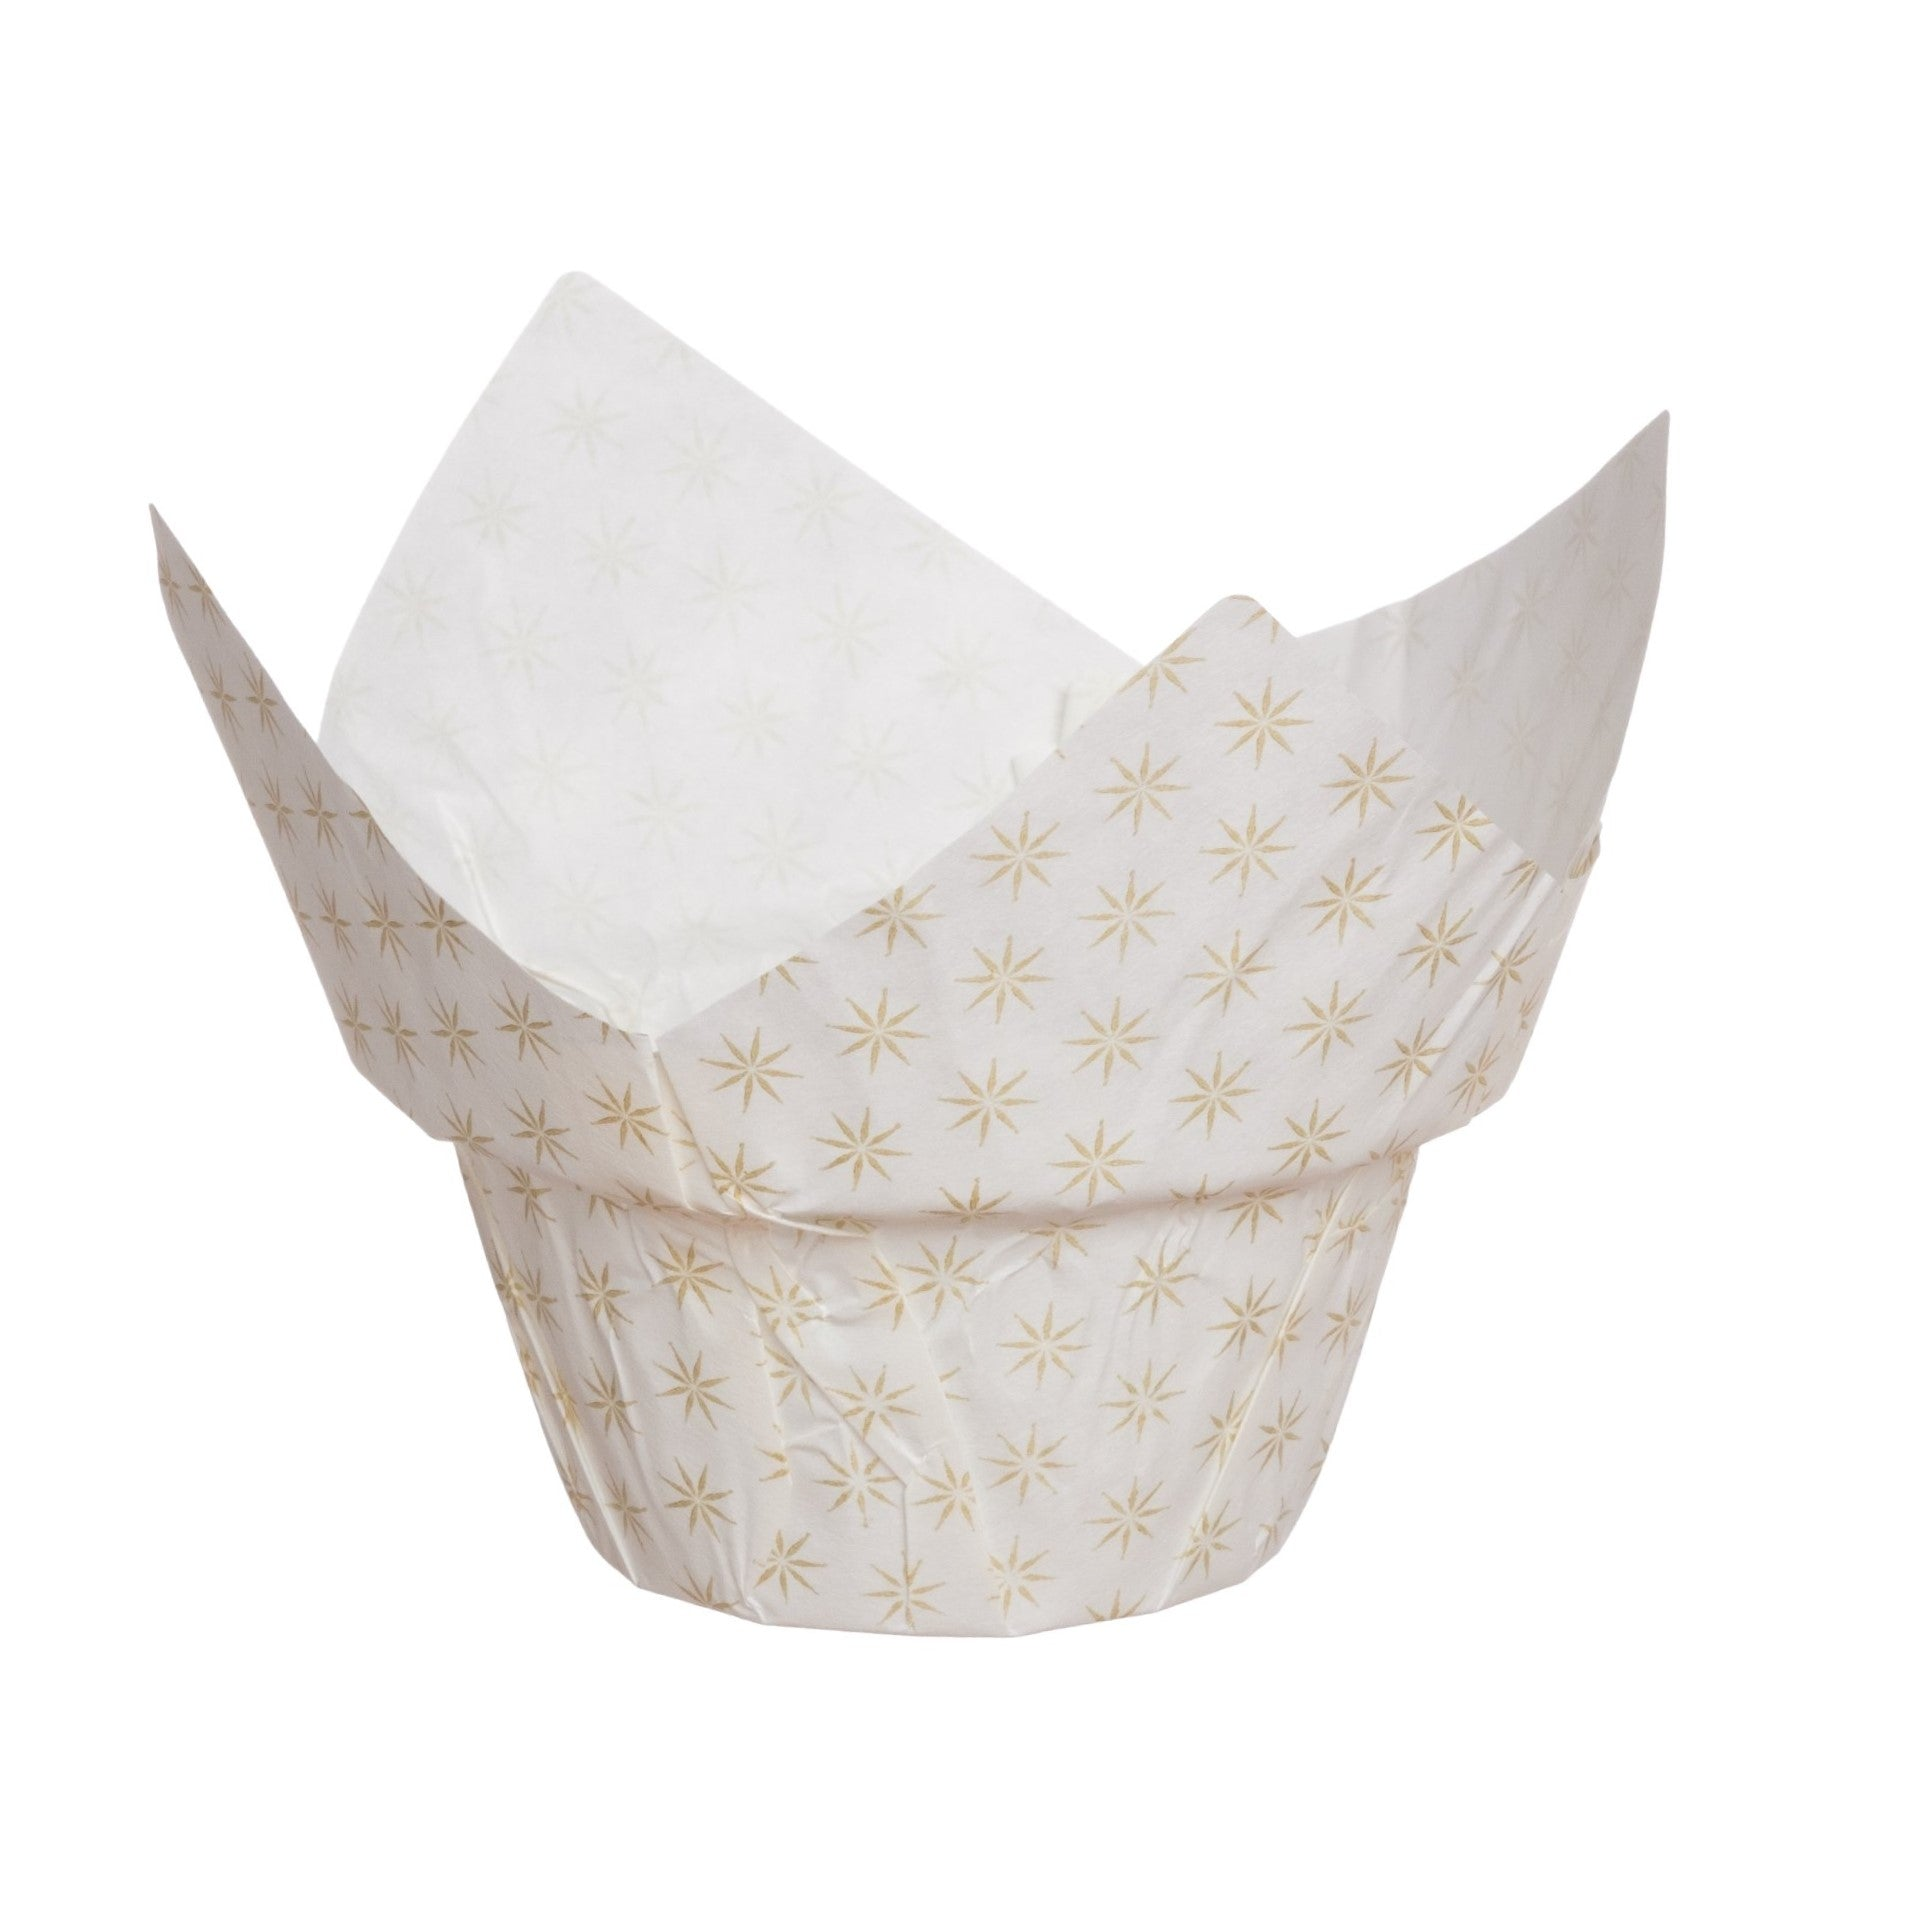 Muffin Baskets, High Crown Muffin Set, Chorus Gold/White (Set of 100) - Welcome Home Brands